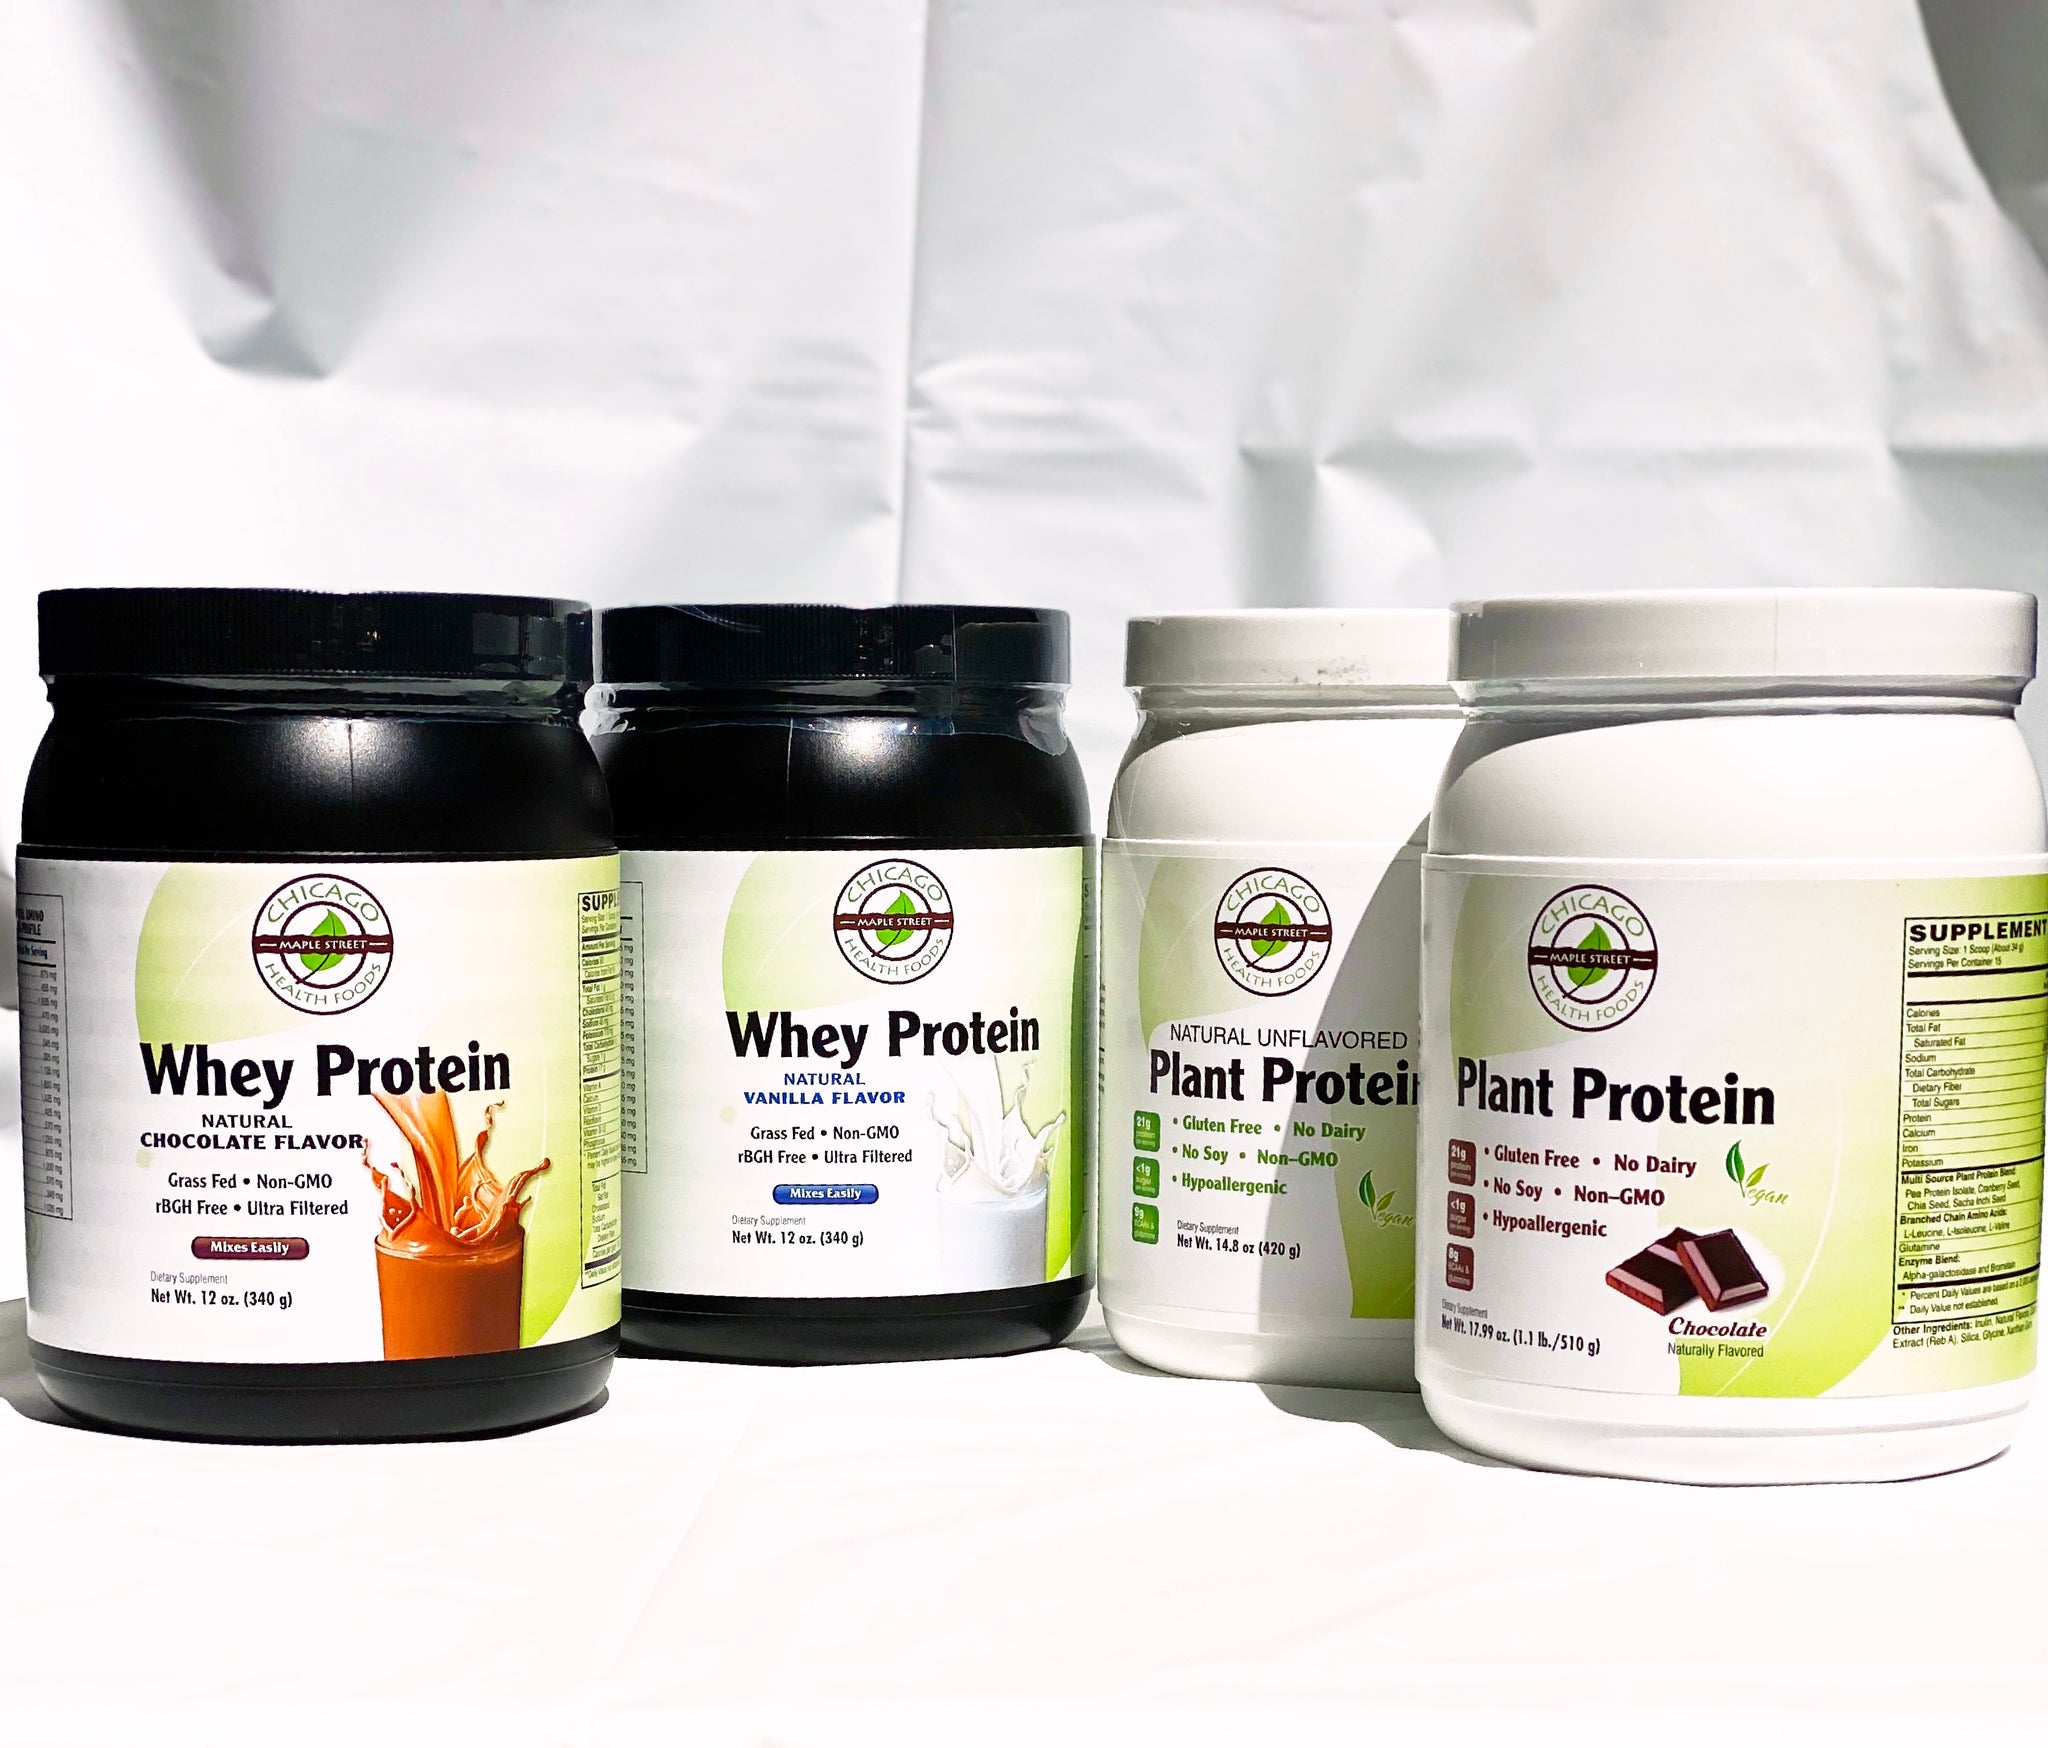 Whey Protein vs. Plant Protein Powder?